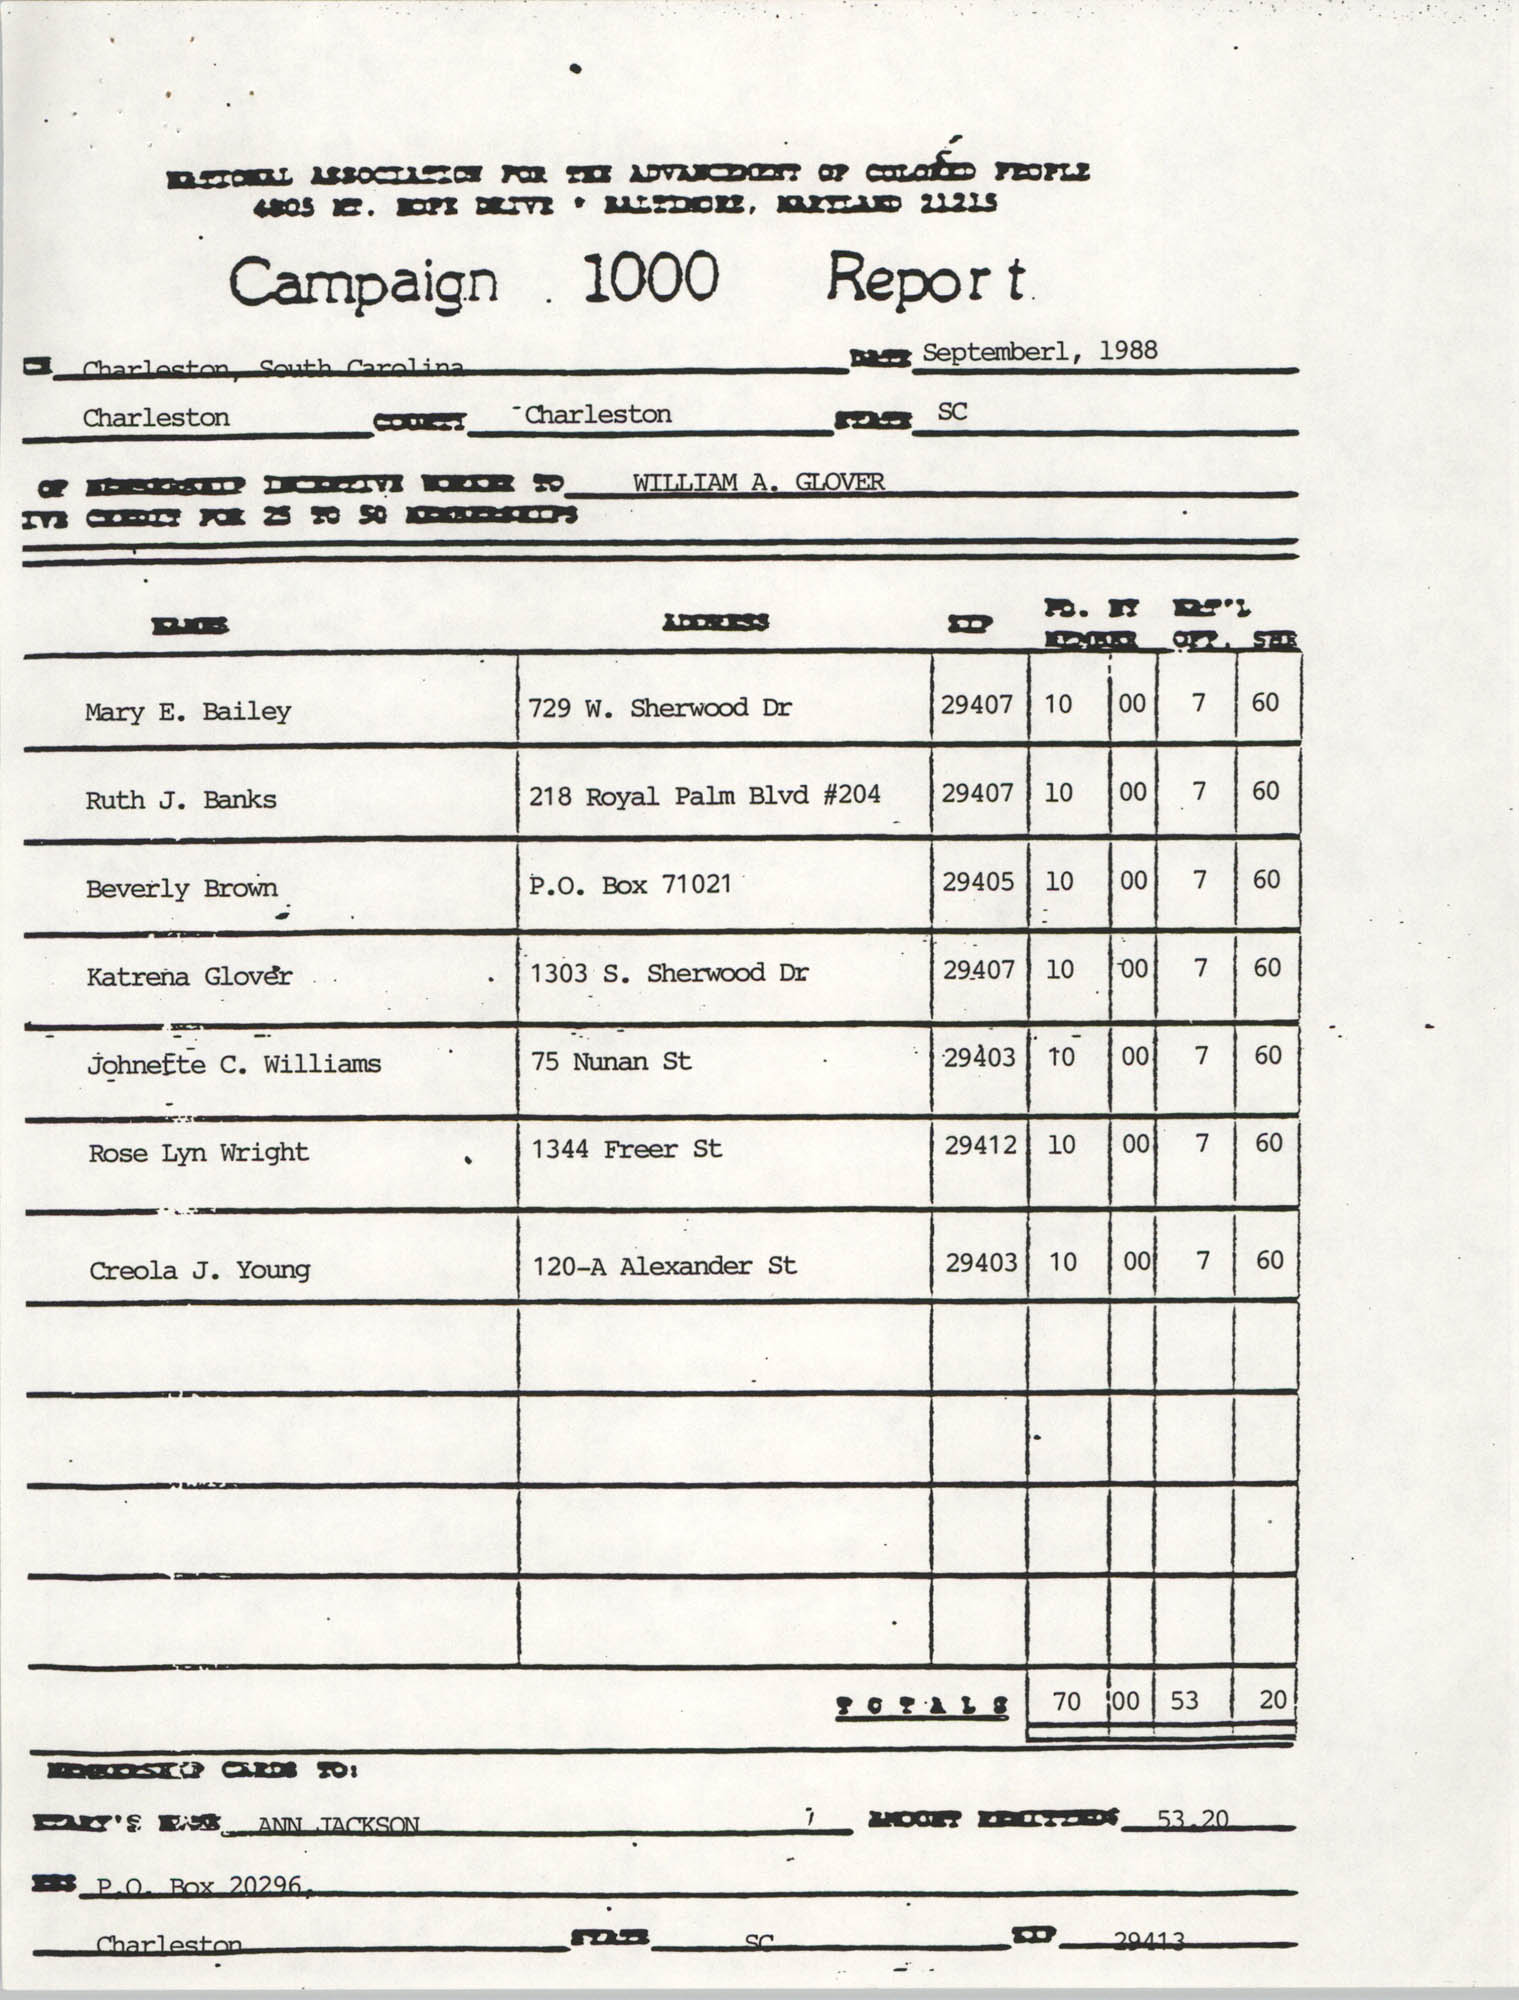 Campaign 1000 Report, William A. Glover, Charleston Branch of the NAACP, September 1, 1988